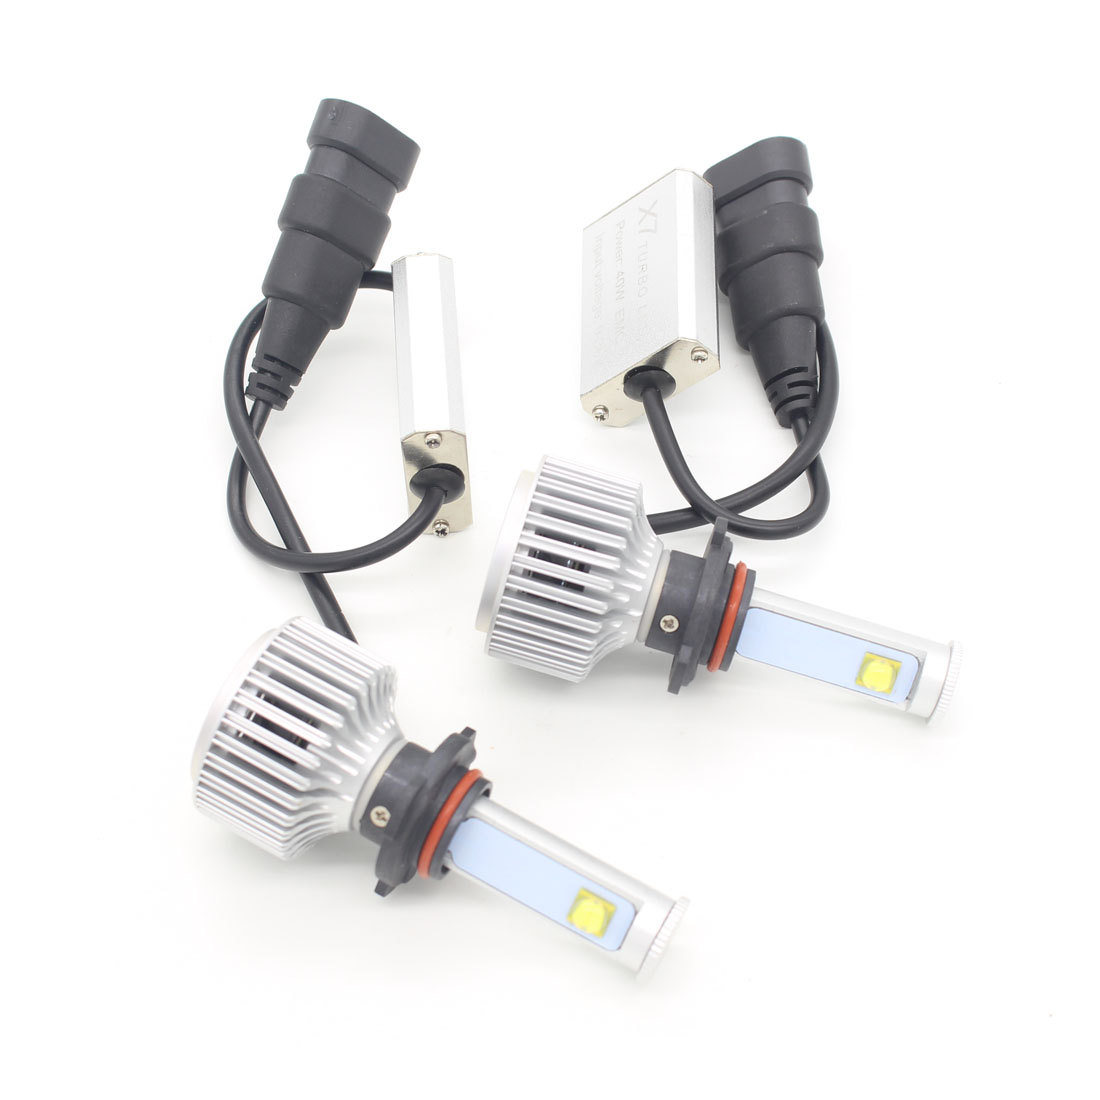 Set LED Car Auto Headlight External Light DRL Parking Fog Light Conversion Kit H11 H4 H7 H1 H13 H3 9006 9005 880 881 LED Bulb one set car led headlight bulbs 13200lm 110w h7 h11 h1 h4 9005 9006 white 6000k led headlight conversion kit